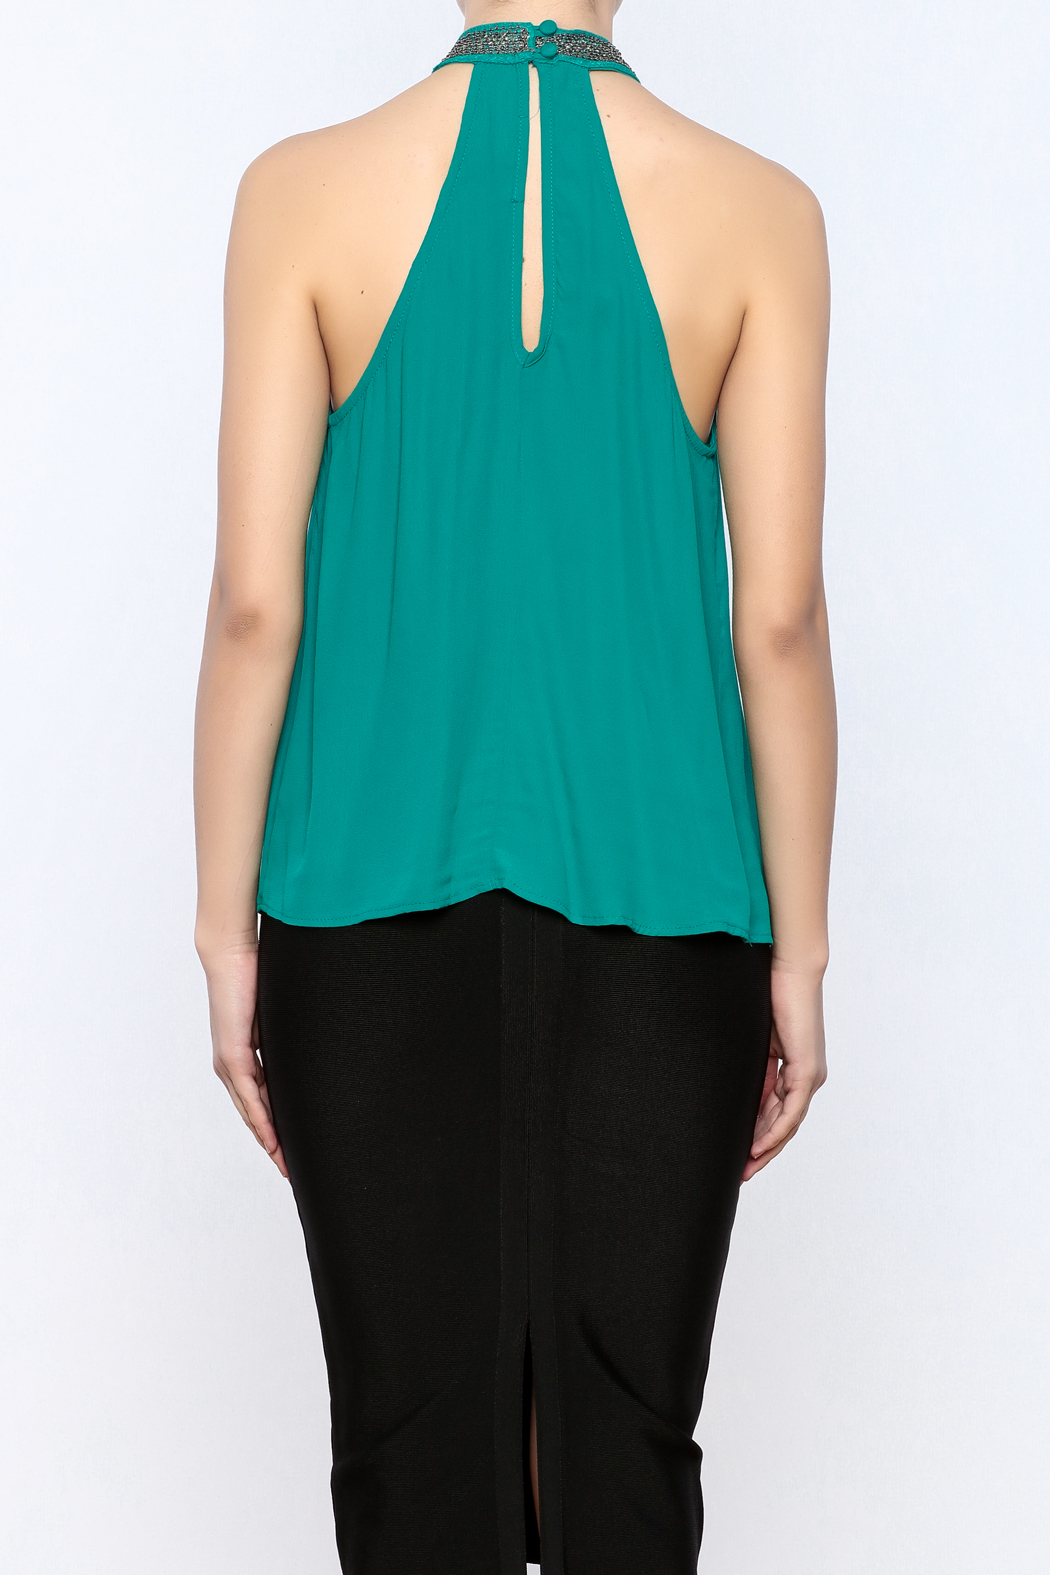 Willow & Clay Beaded Halter Top - Back Cropped Image